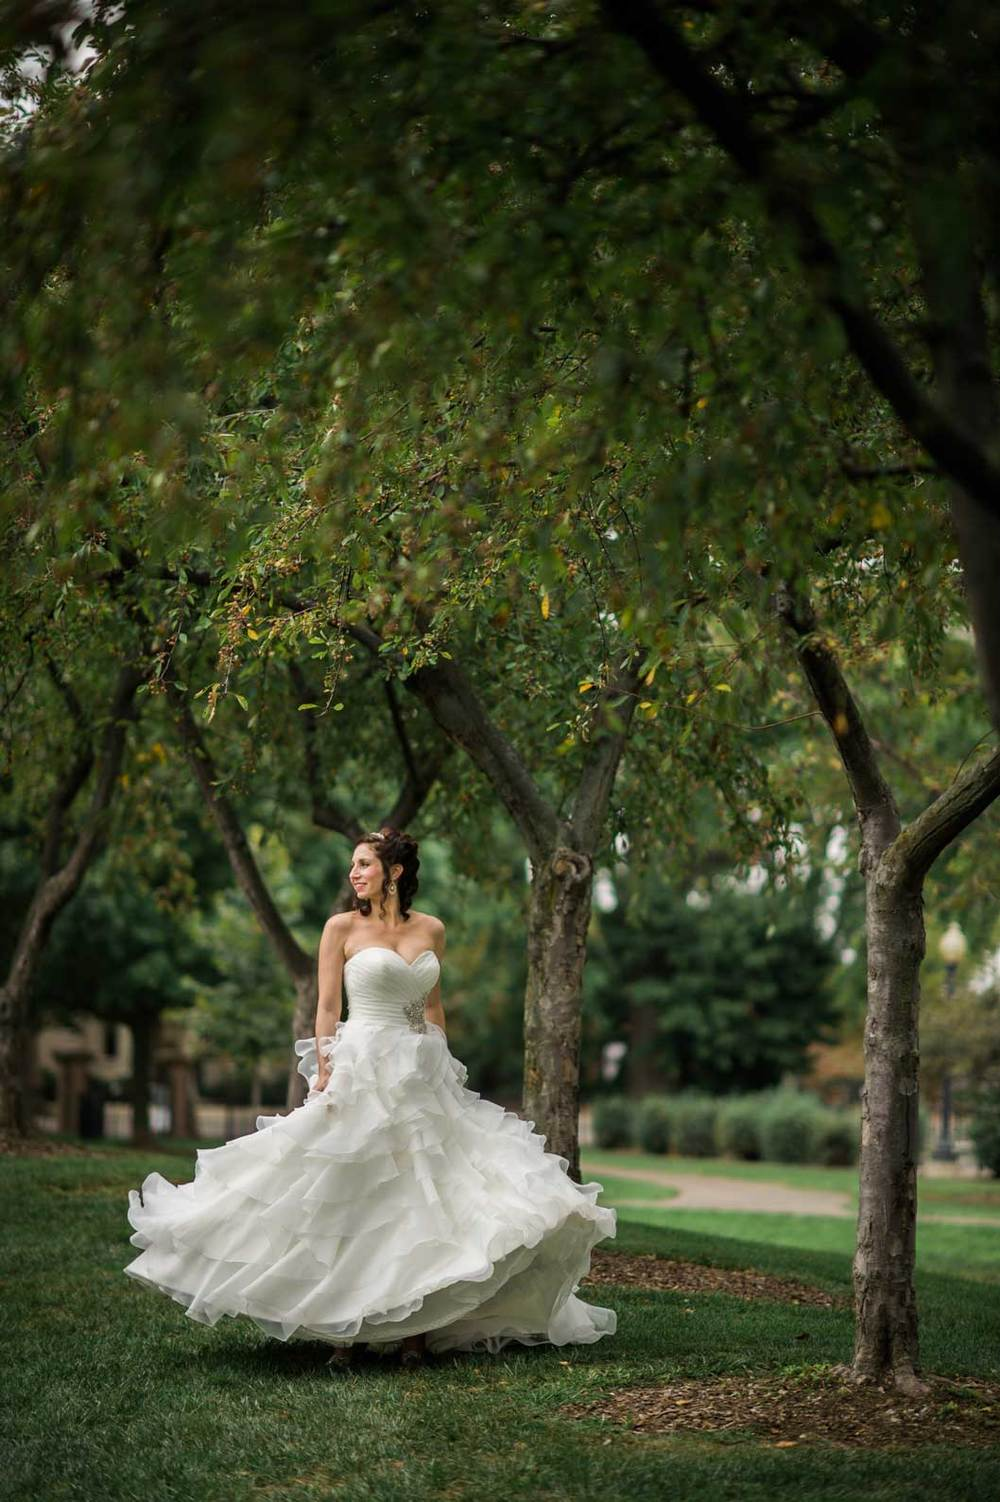 A bride spinning in her dress in the Topiary Park in Columbus, OH